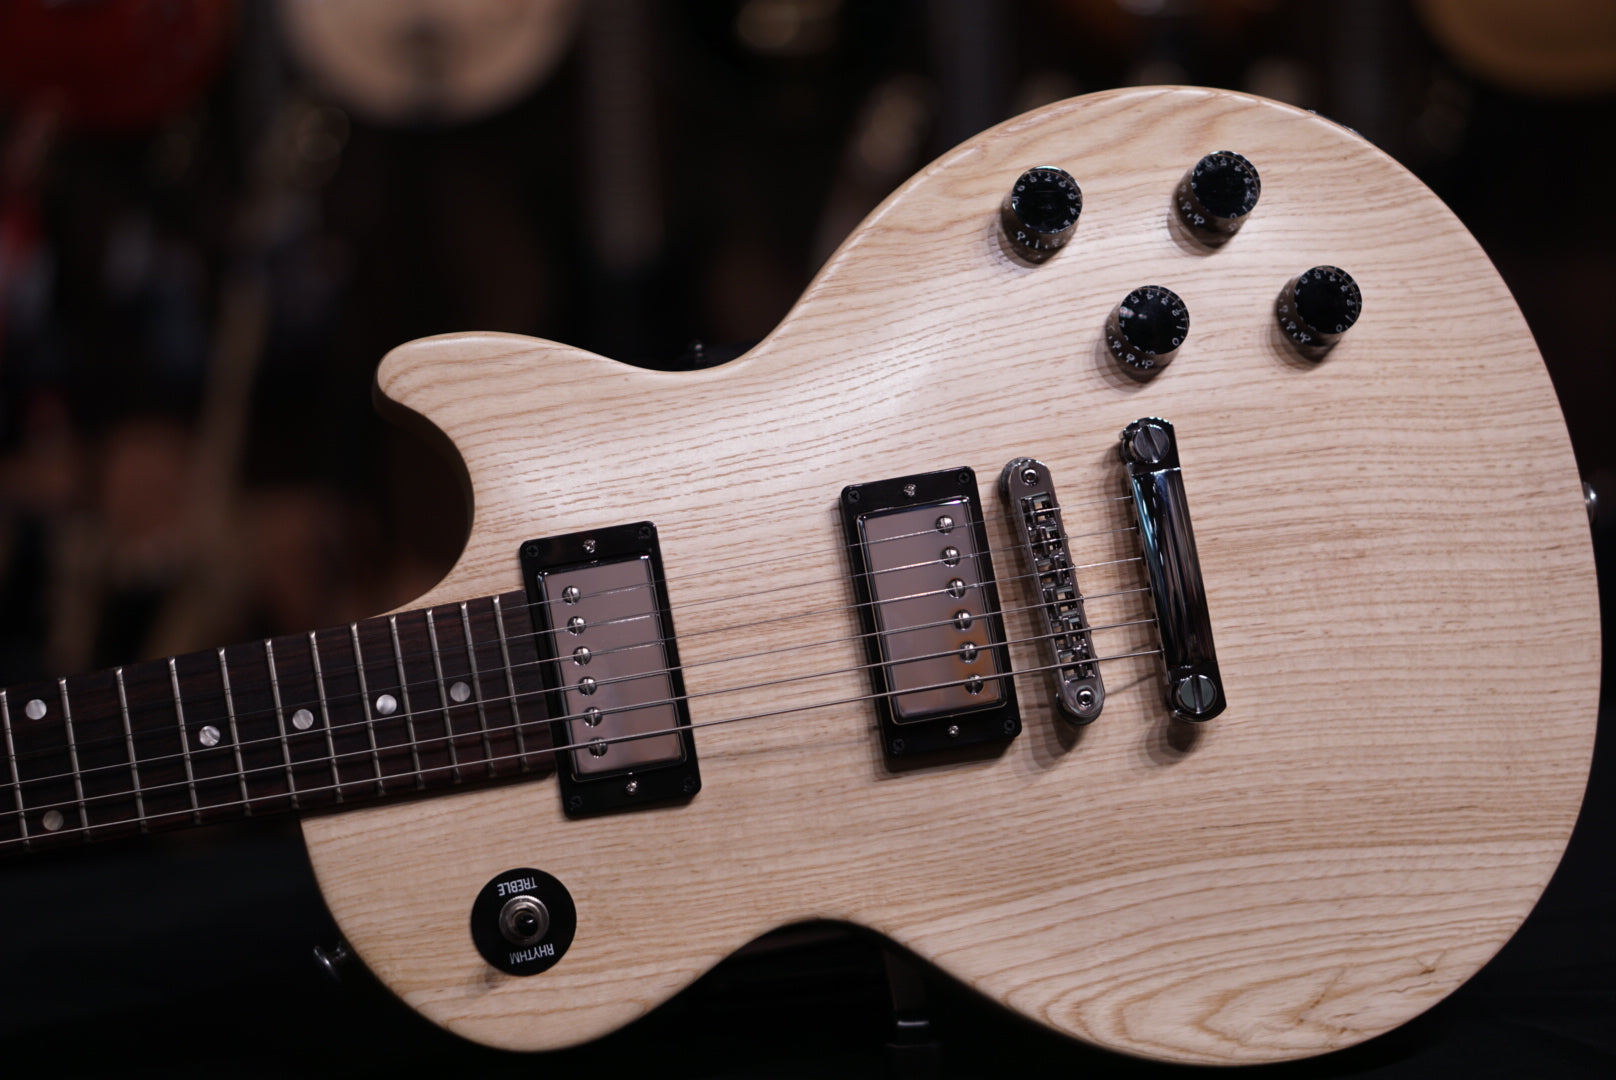 Gibson les paul studio swamp ash Natural Satin